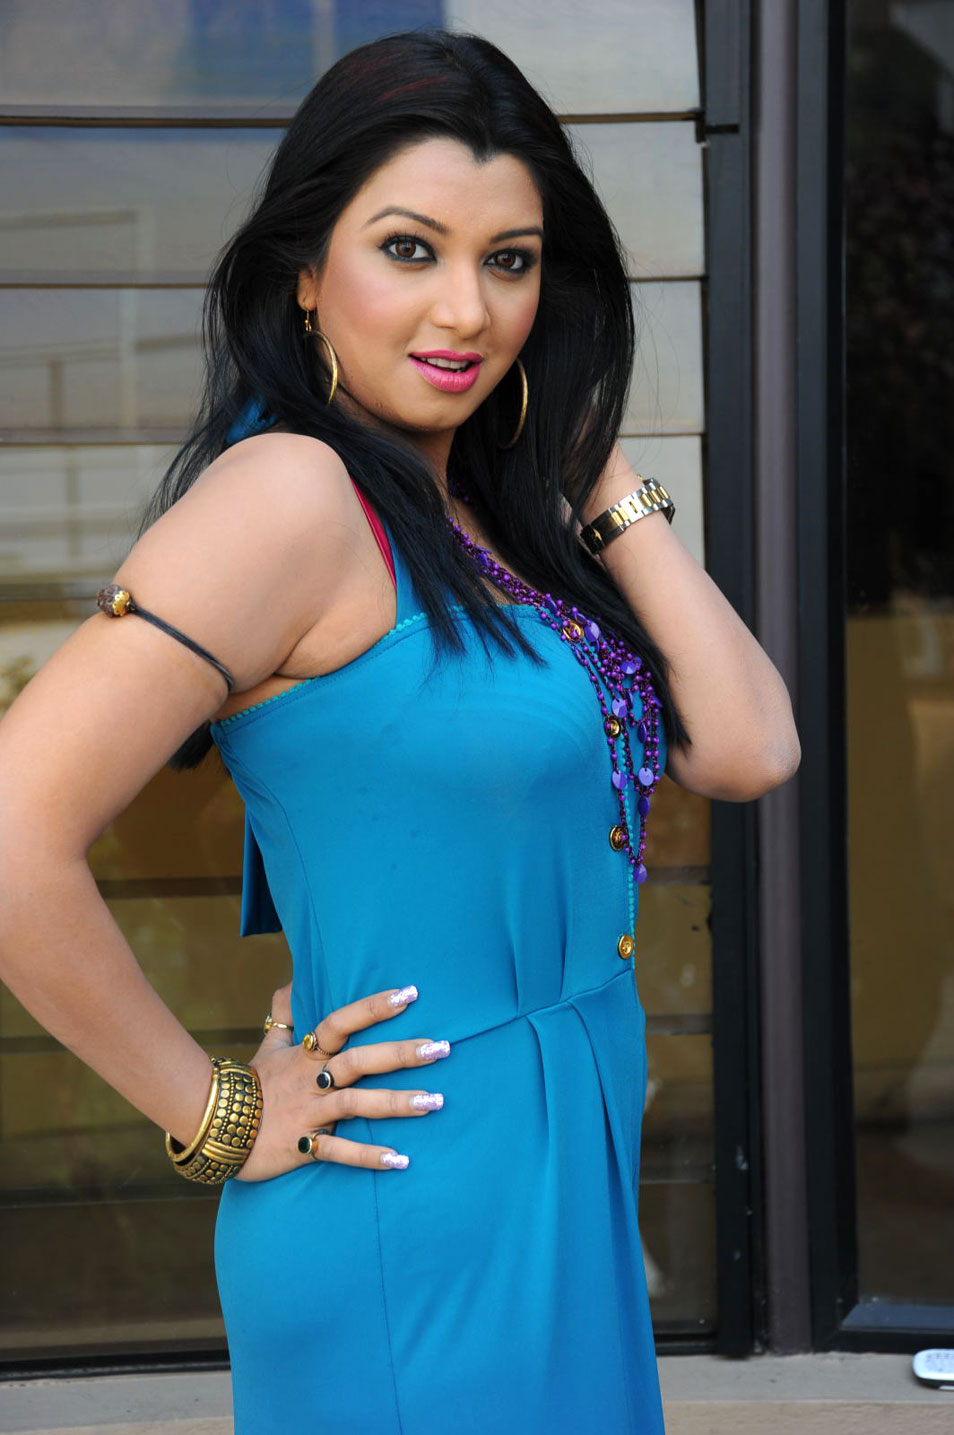 Priya patel sexy indian nri slideshow - 2 5